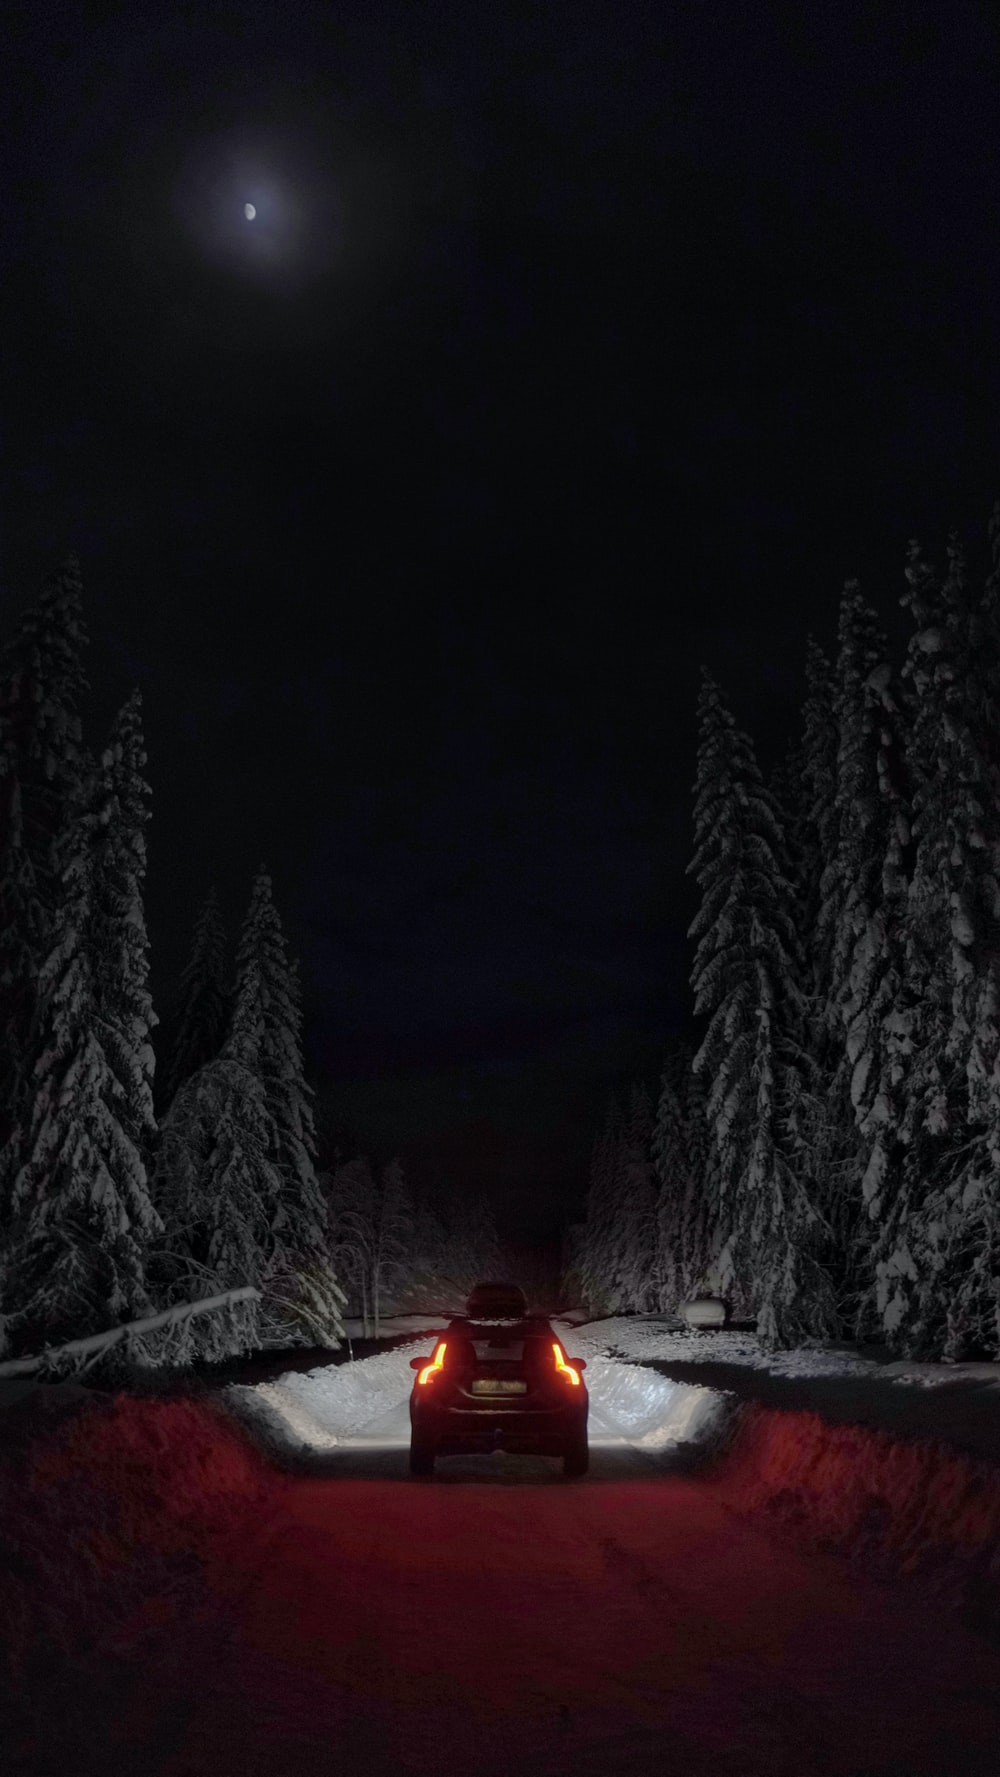 person in red jacket sitting on snow covered ground during night time